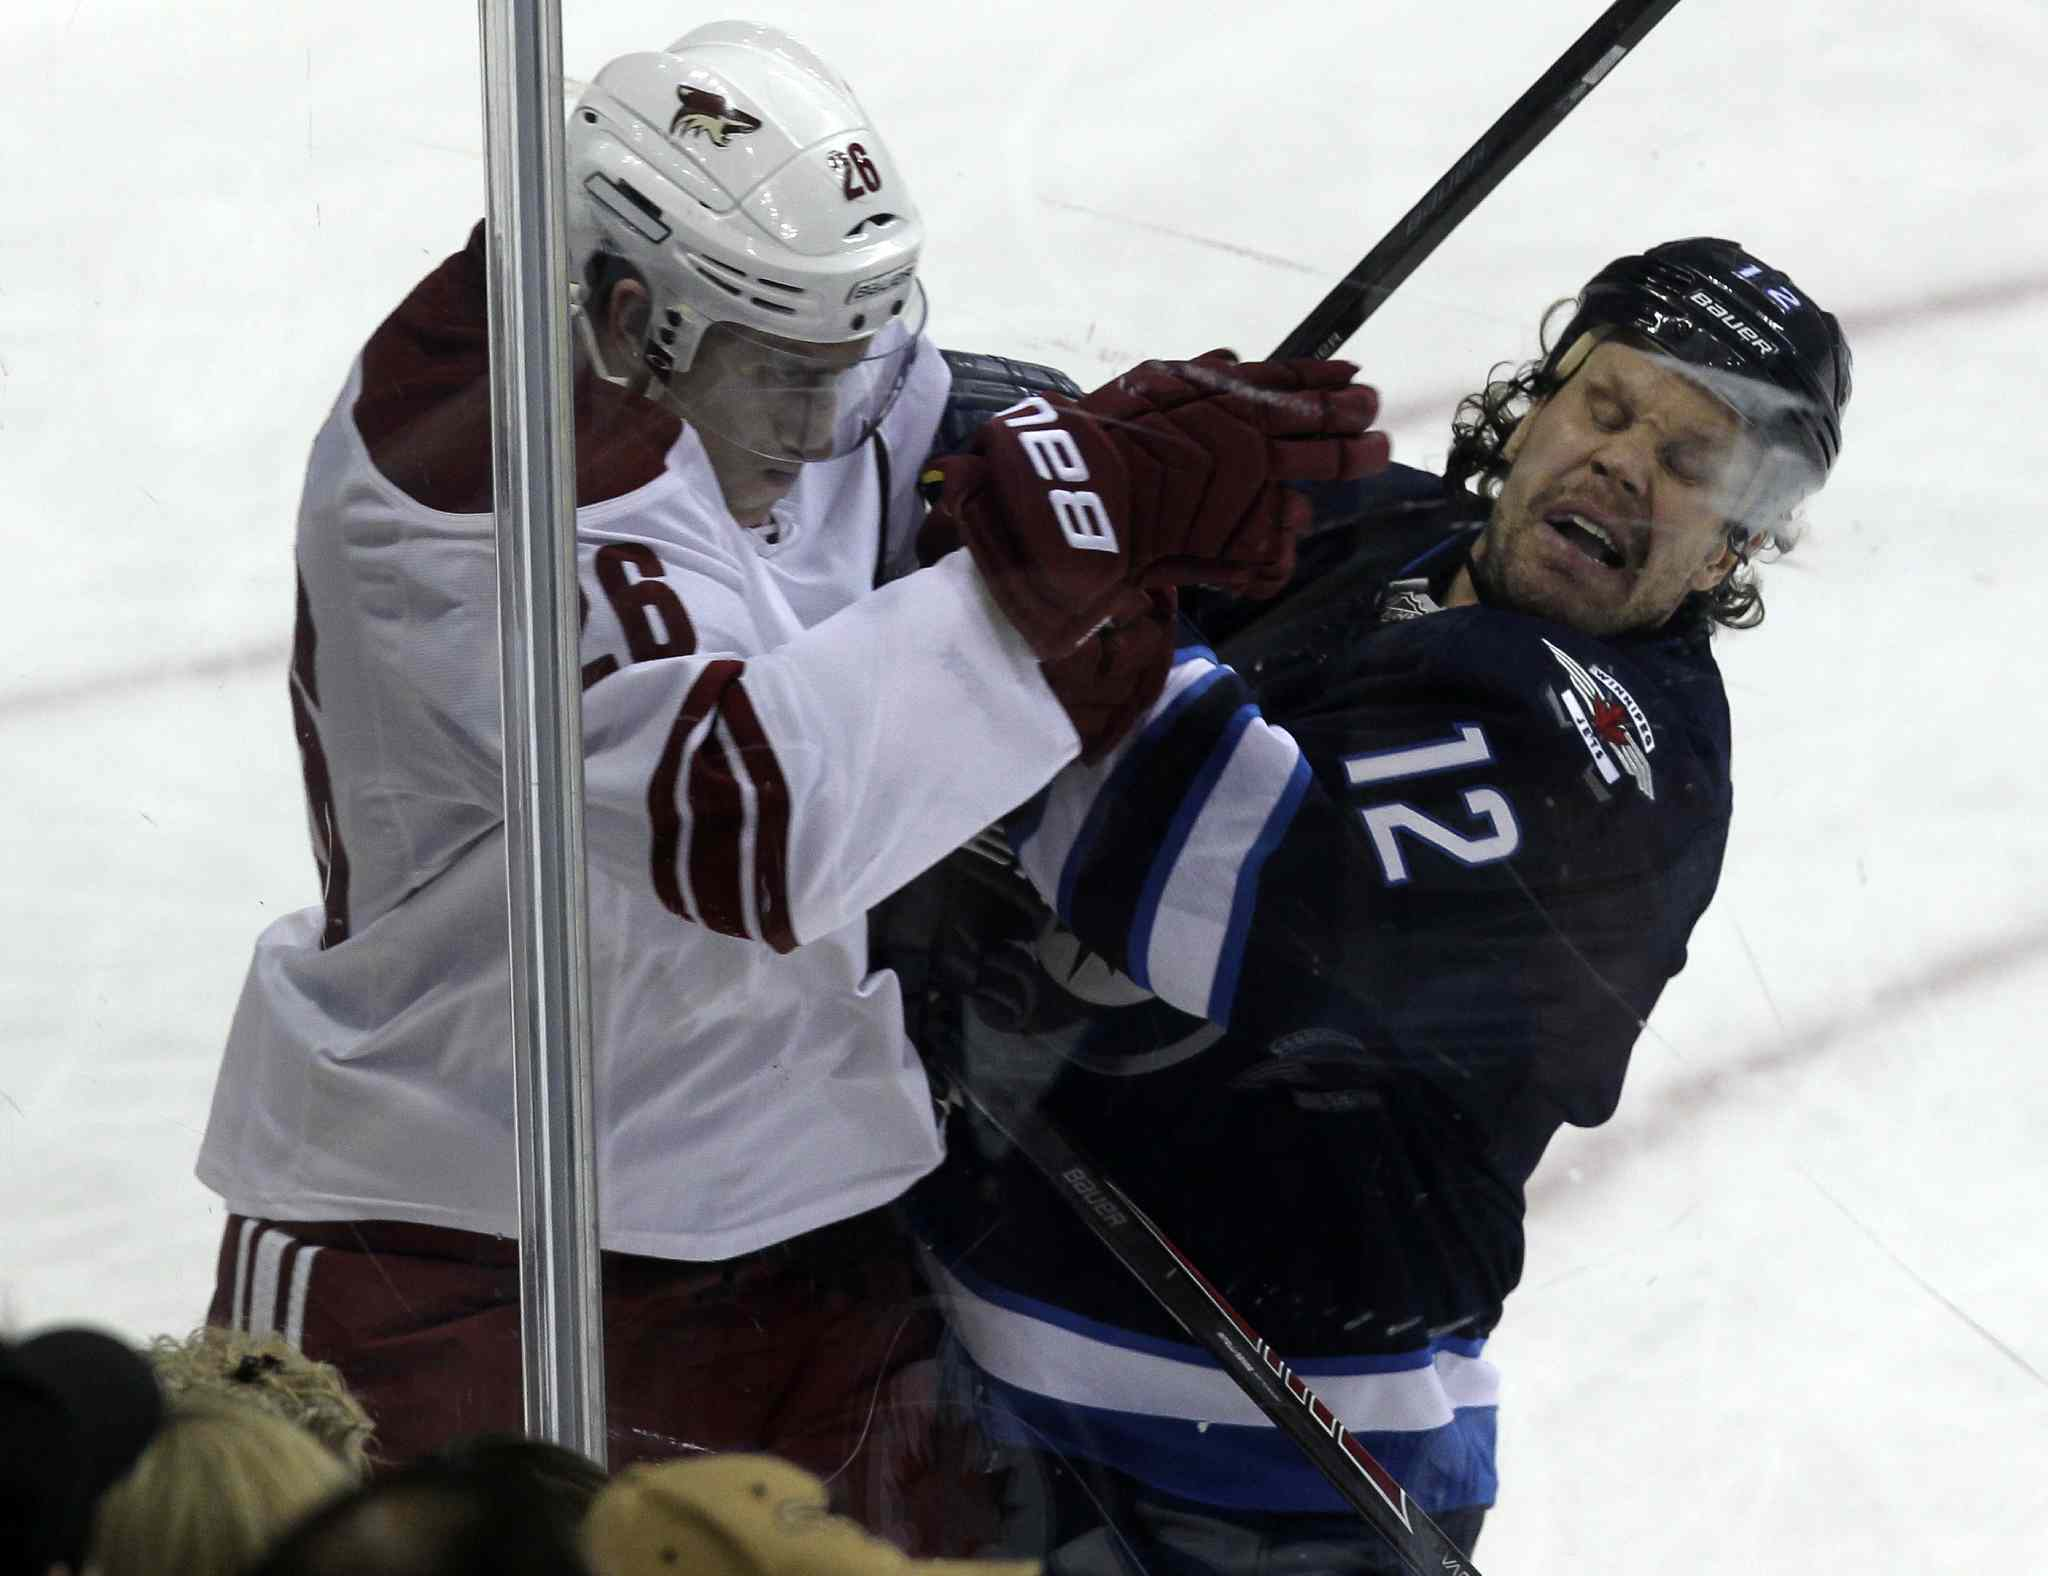 Winnipeg Jets' Olli Jokinen (12) slams Phoenix Coyotes' Michael Stone (26) into the boards during the first period of Thursday's game.